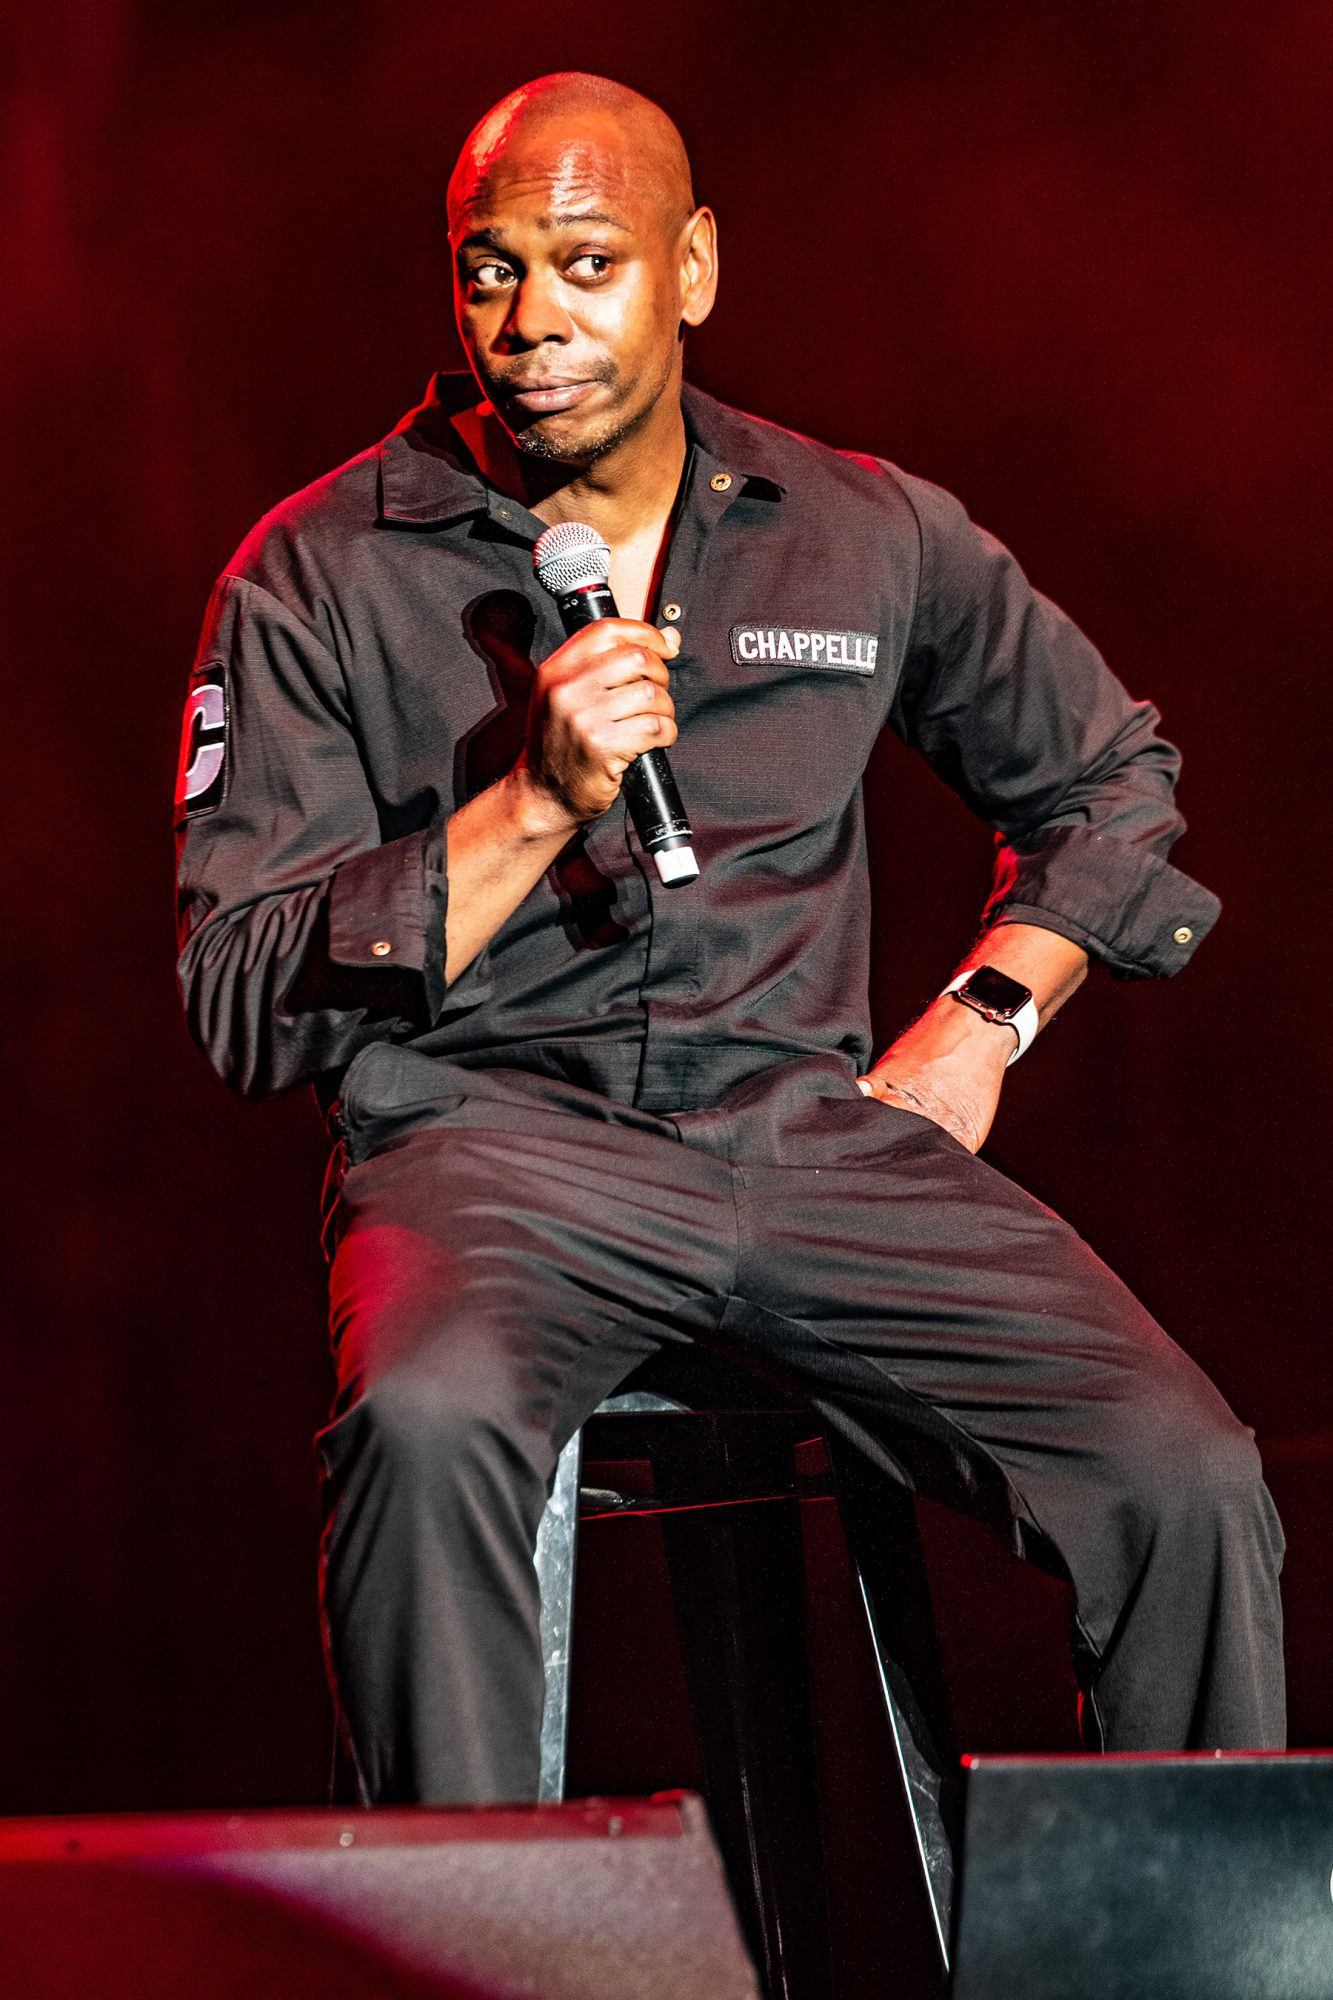 Exclusive - Dave Chappelle performance at Capetown's Grand Arena, South Africa - 27 Nov 2018